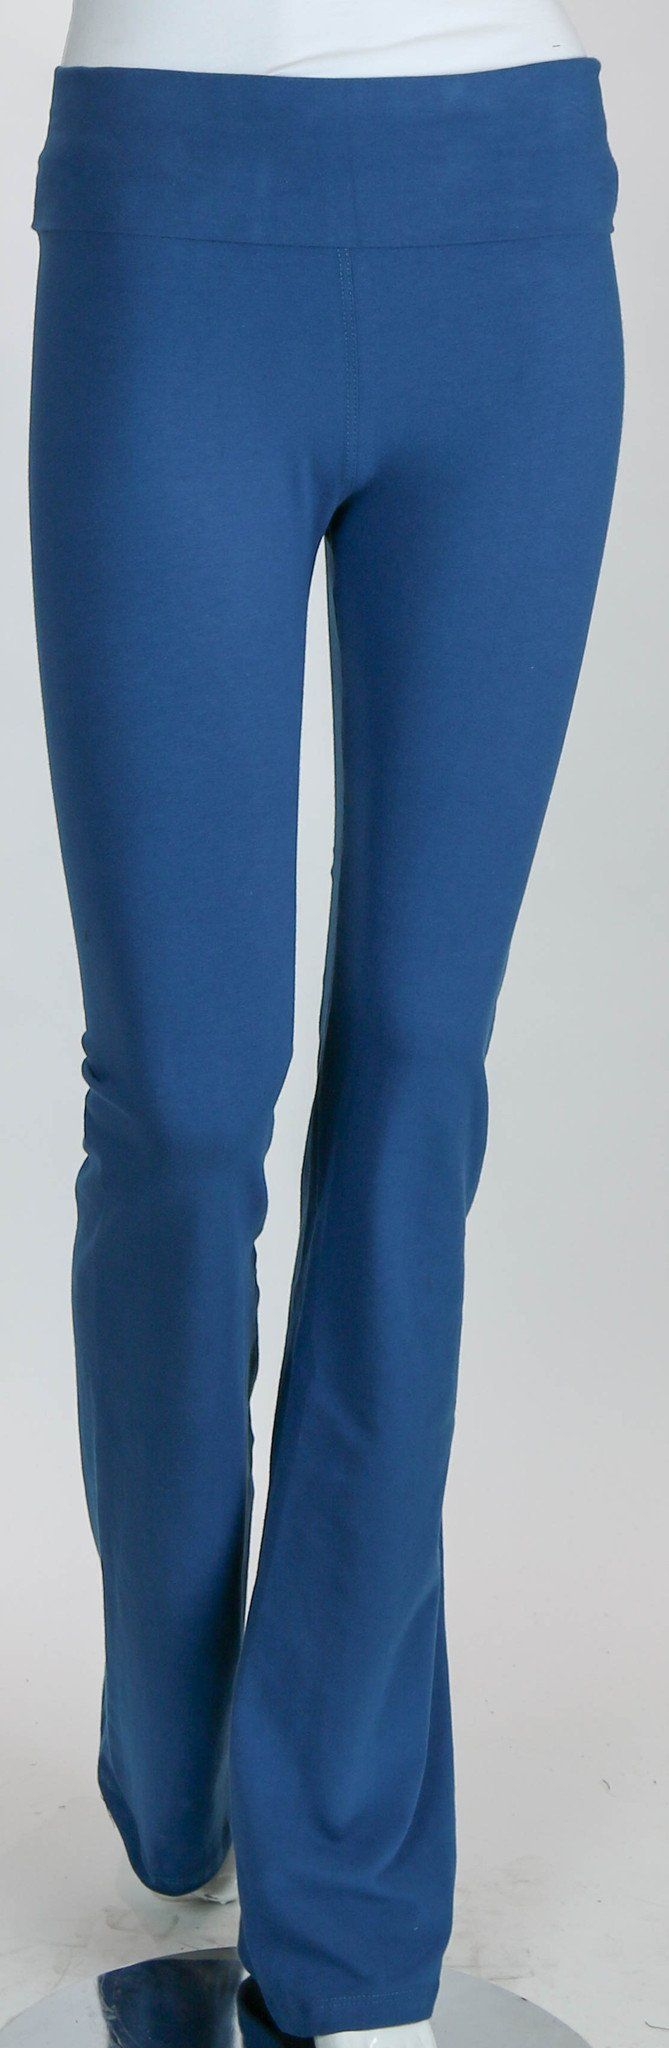 T-Party Fold Over Boot Cut Length Yoga Pants